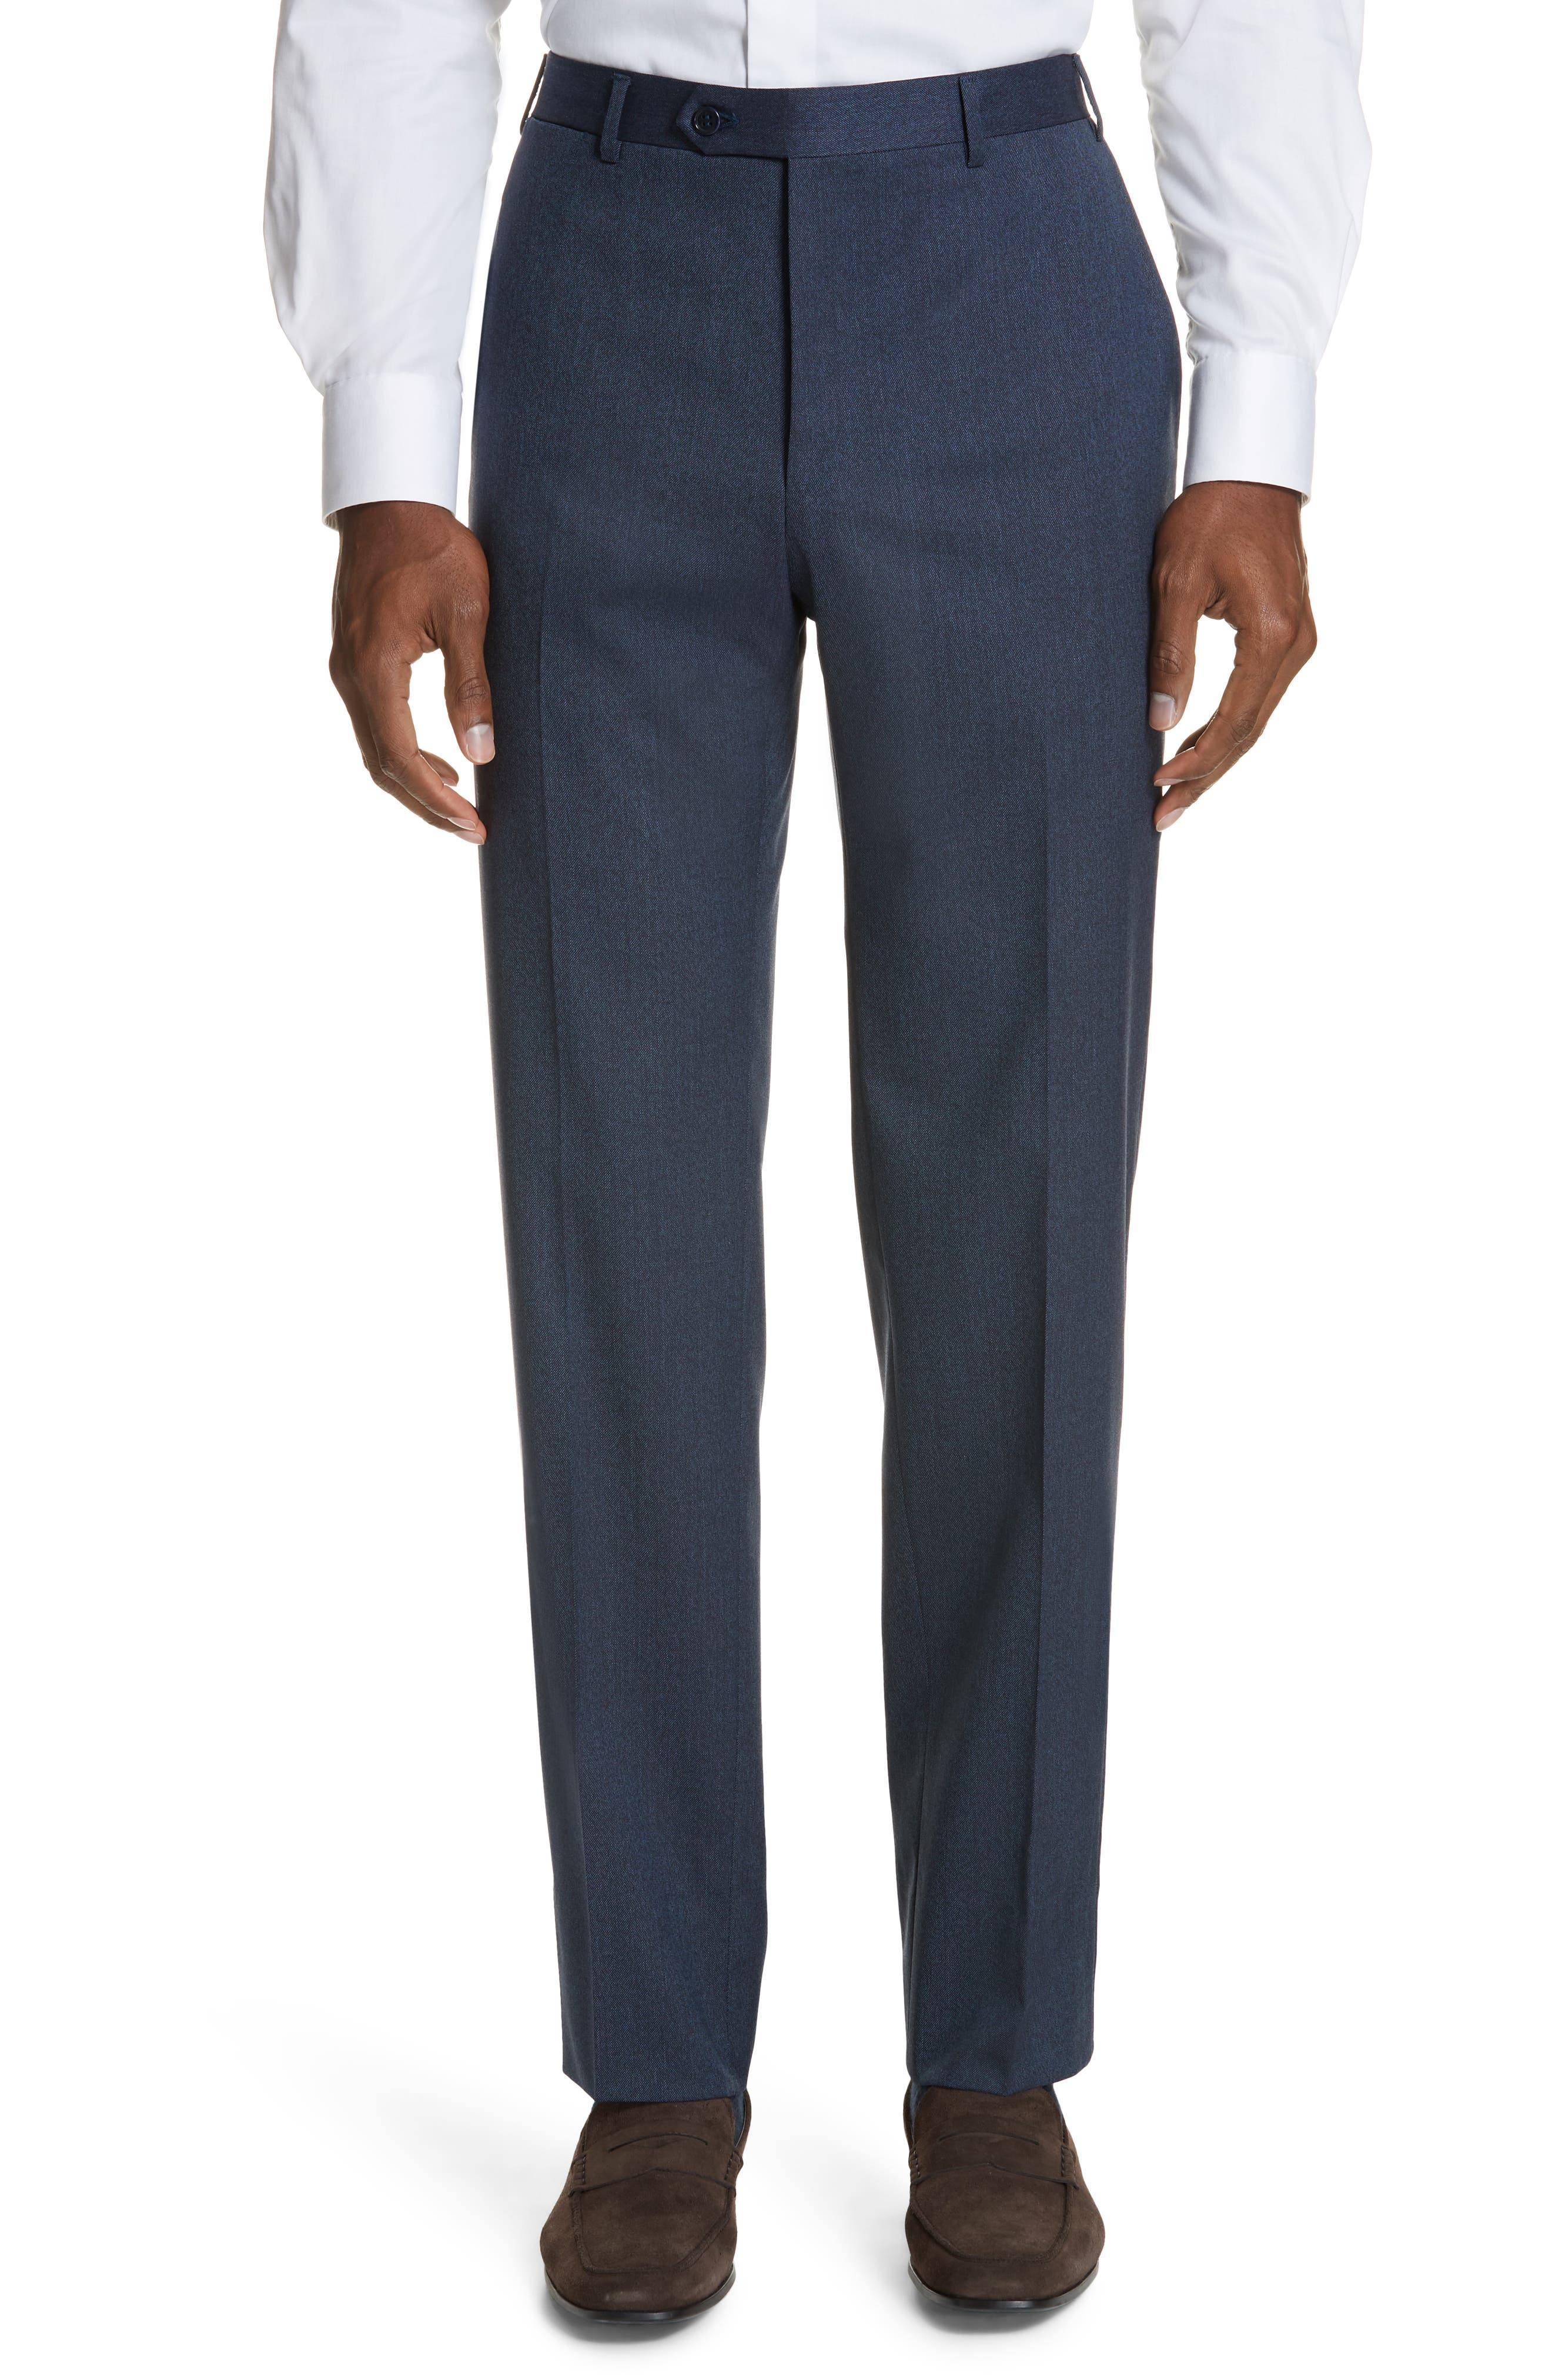 Cavaltry Flat Front Solid Stretch Wool Trousers,                             Main thumbnail 1, color,                             DARK BLUE